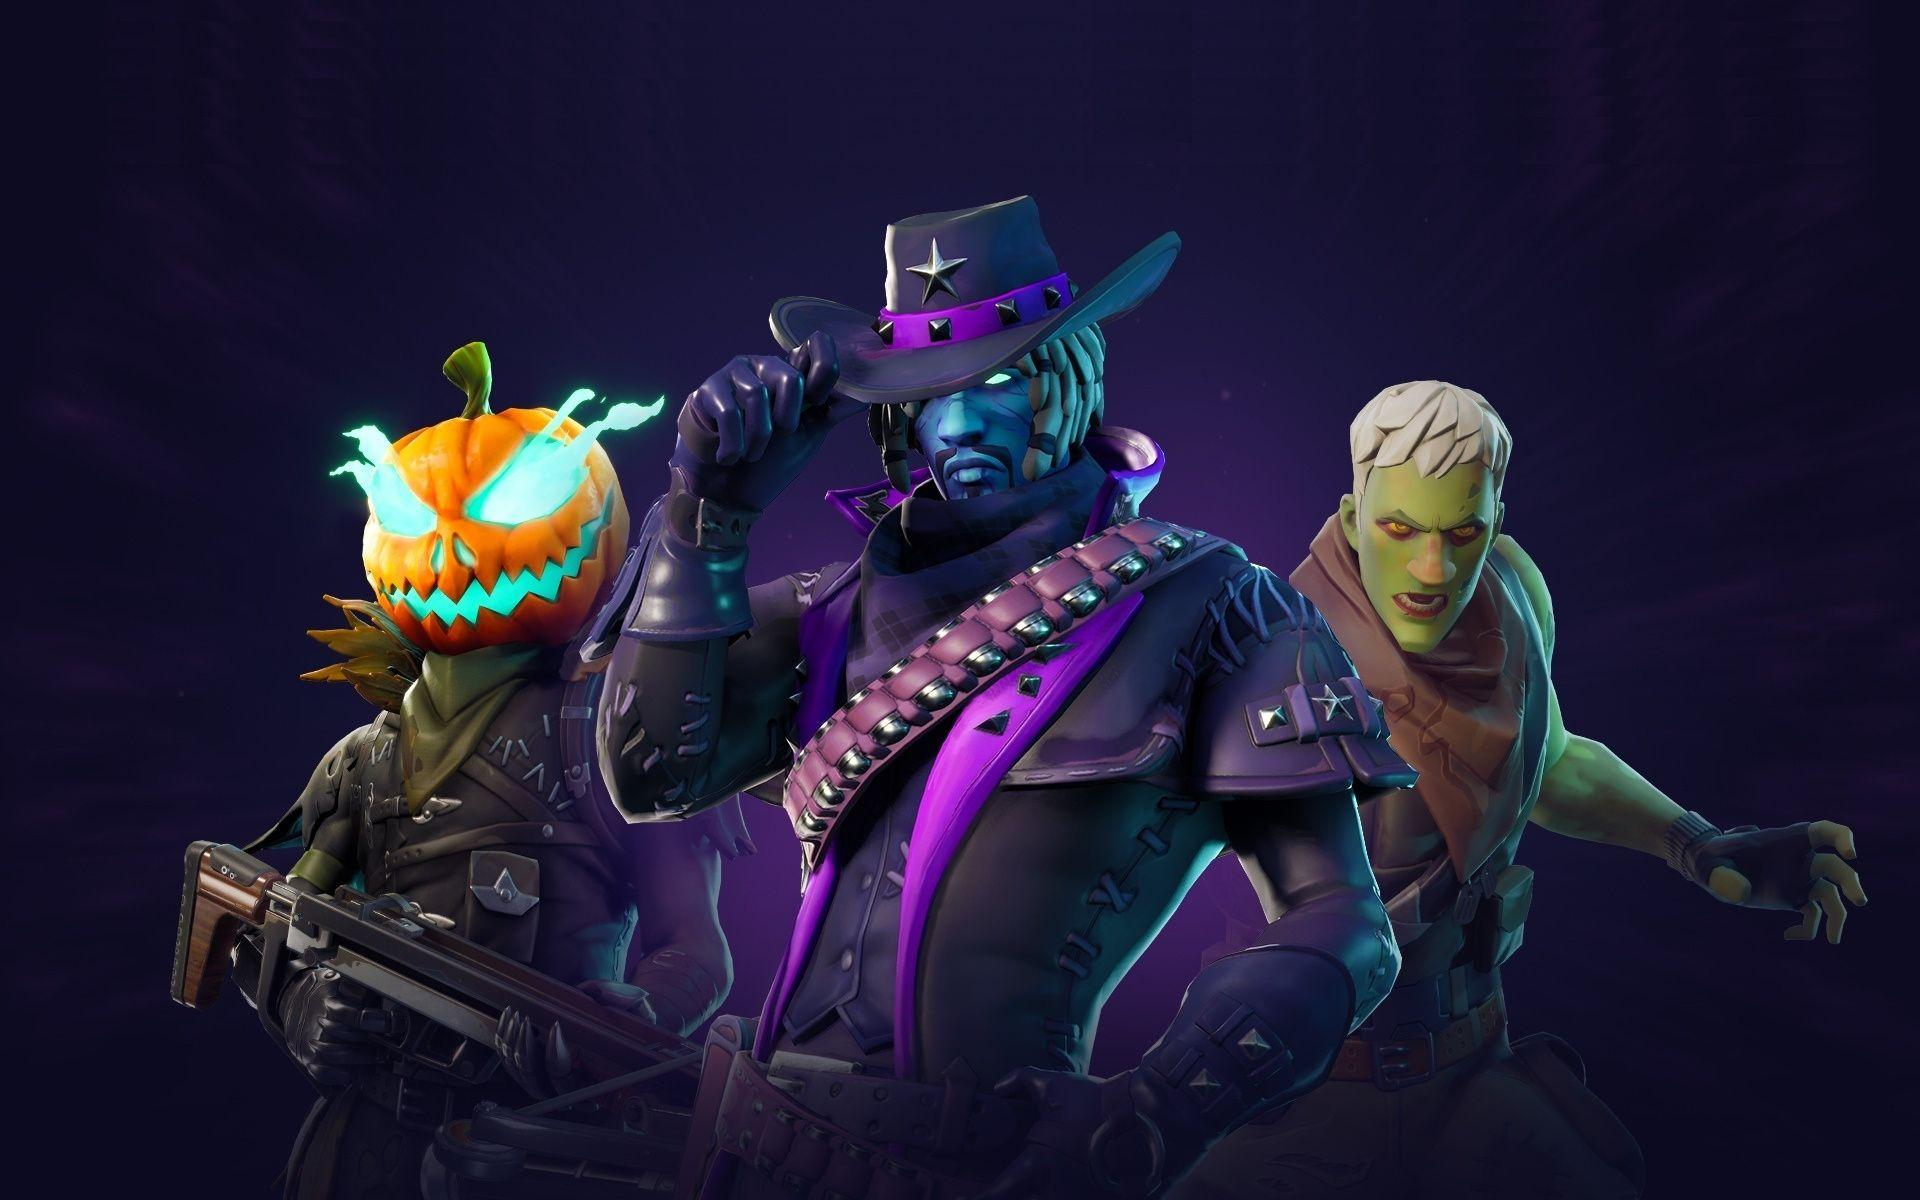 Download wallpapers Hollowhead, Deadfire, Fortnitemares, Fortnite ...